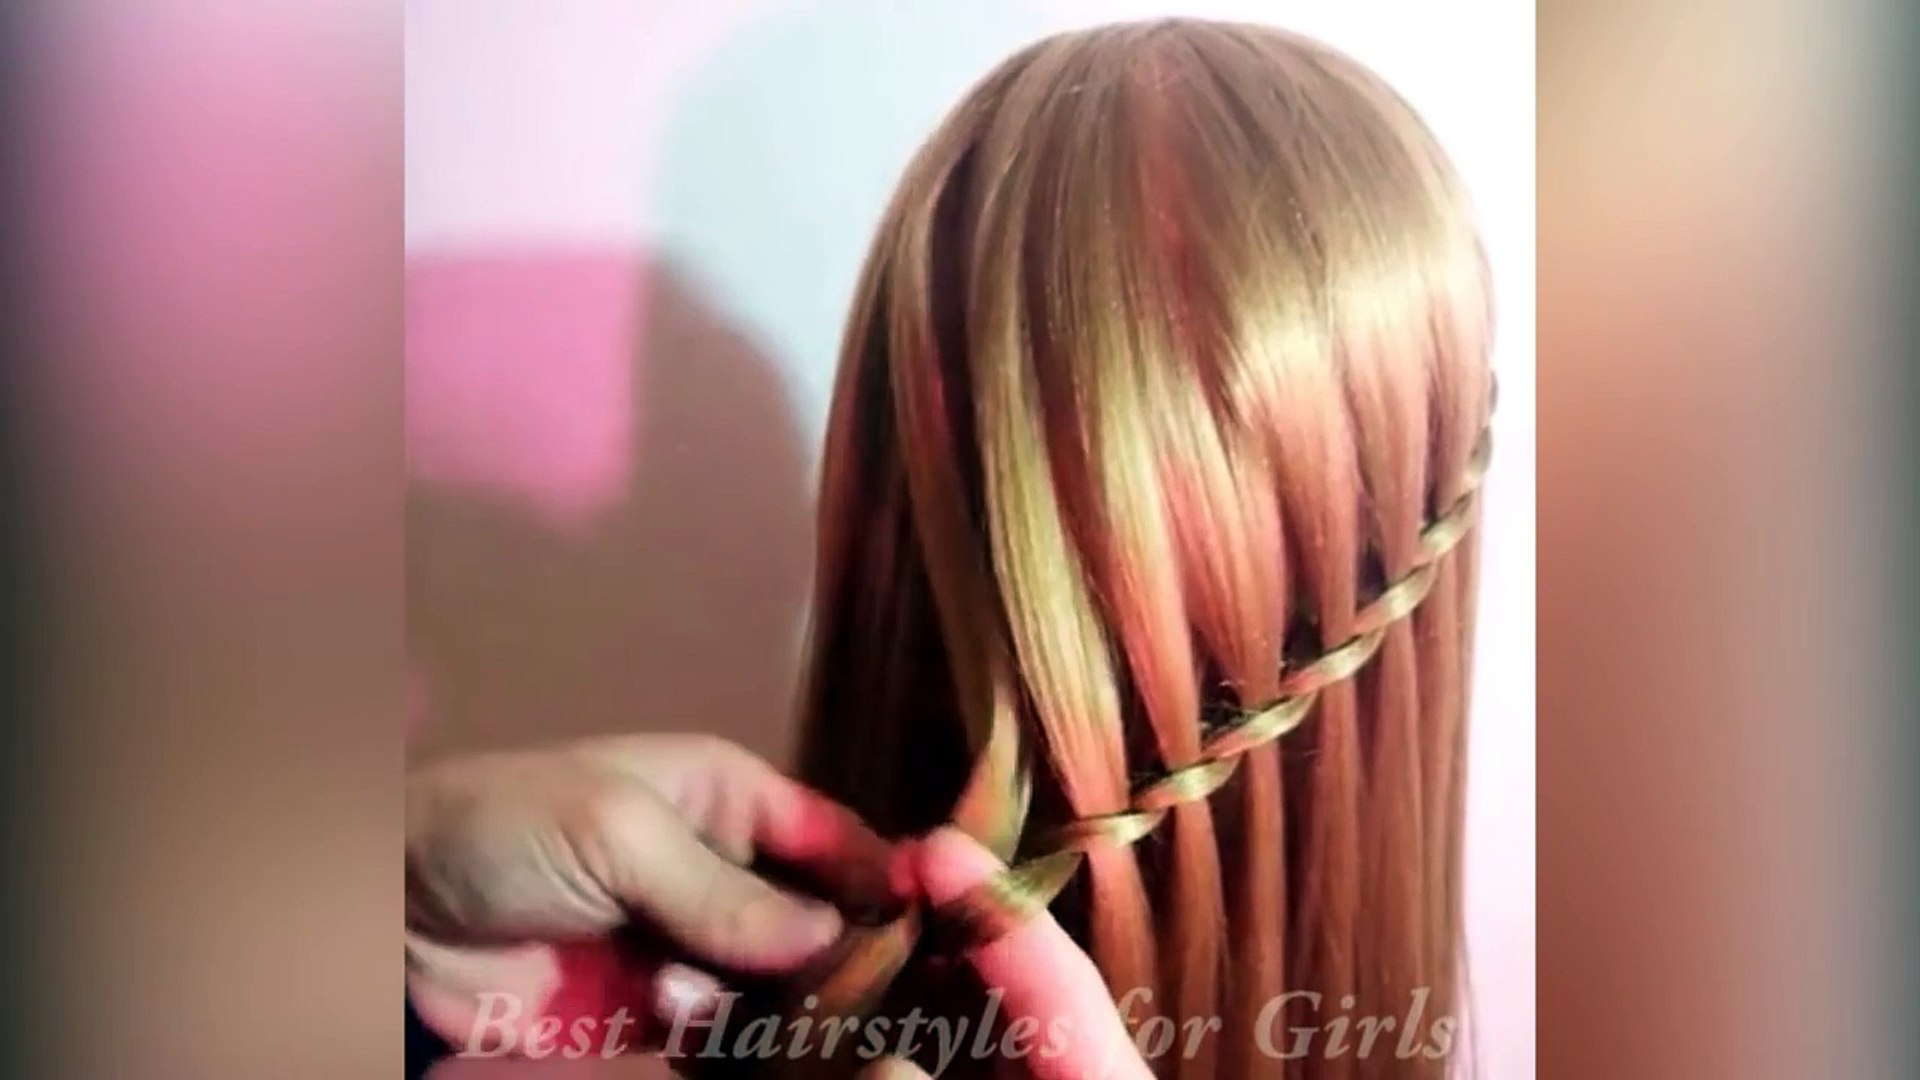 10 Easy Hairstyles for Long Hair Best Hairstyles for Girls